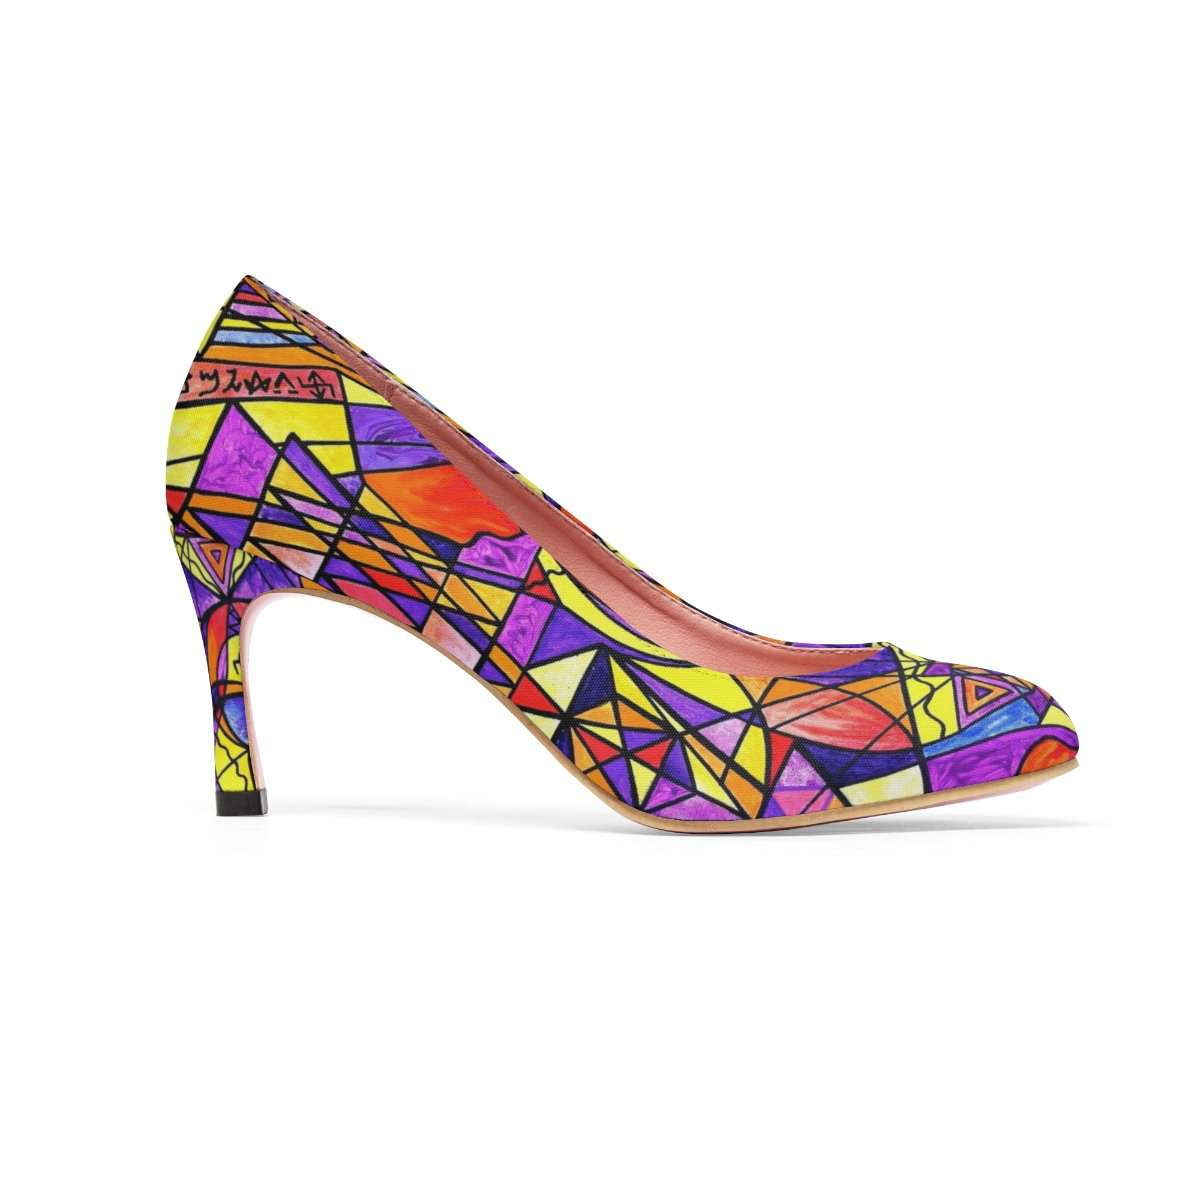 The Destiny Grid - Women's High Heels